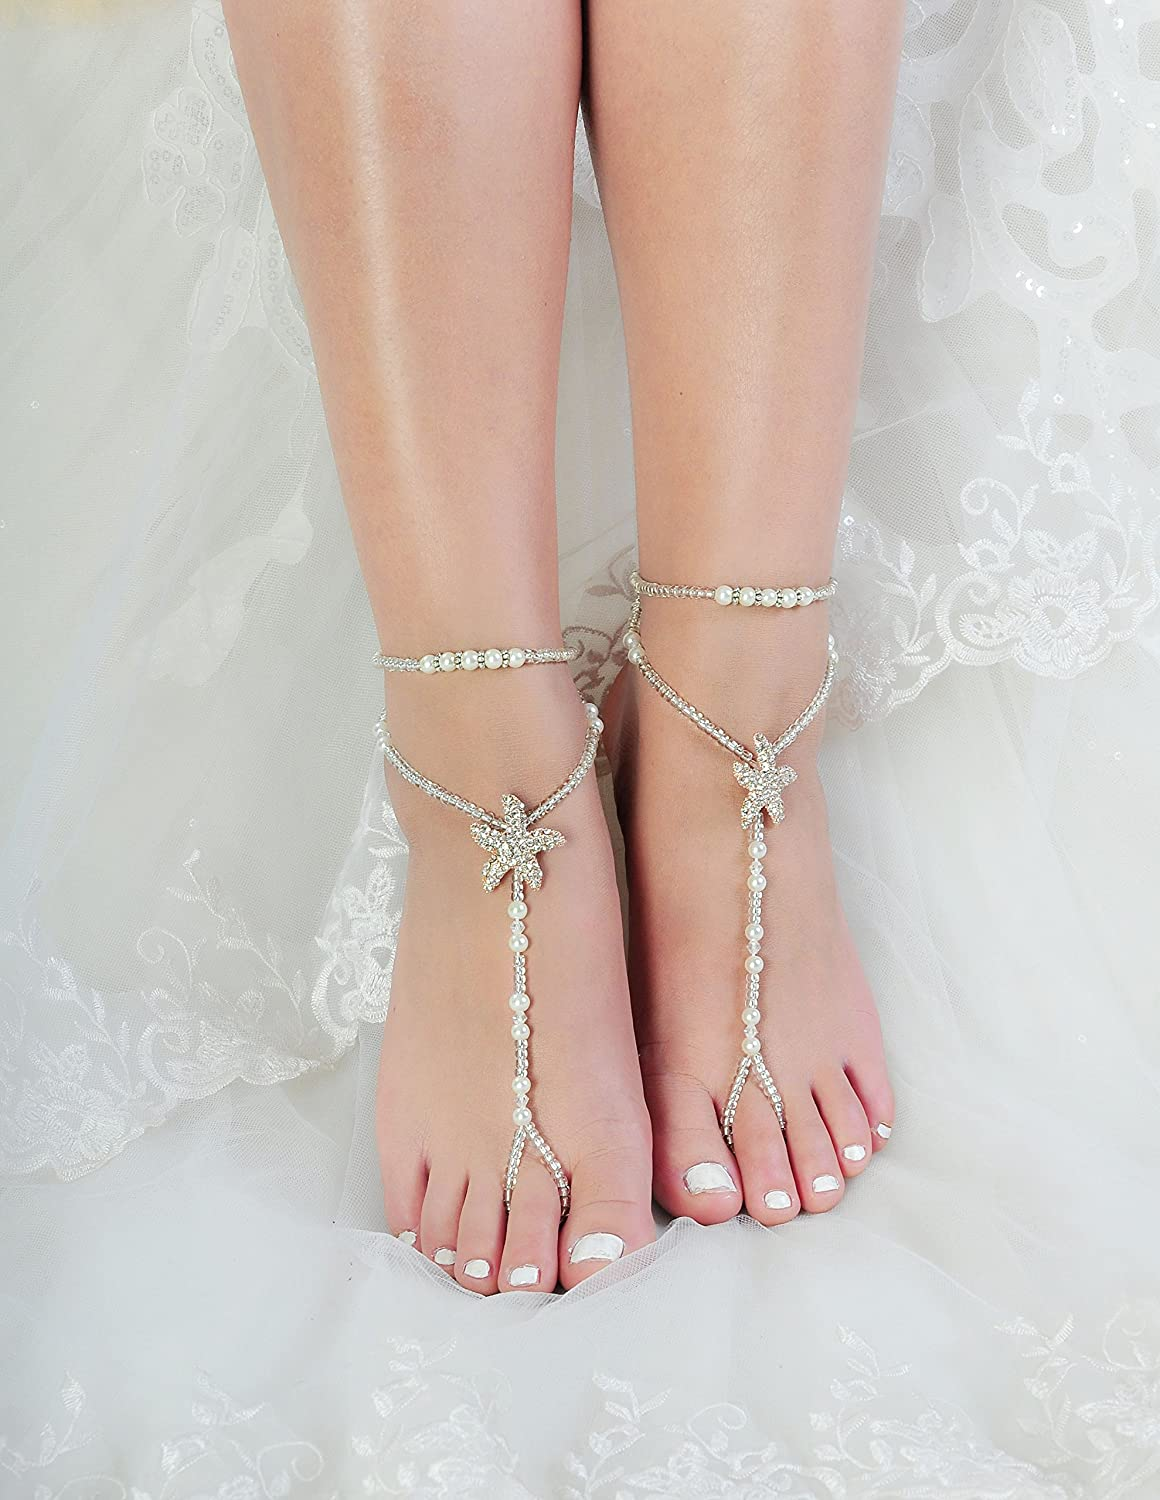 c658be18c Amazon.com  Fine Lady Beaded Beach Wedding Barefoot Sandals